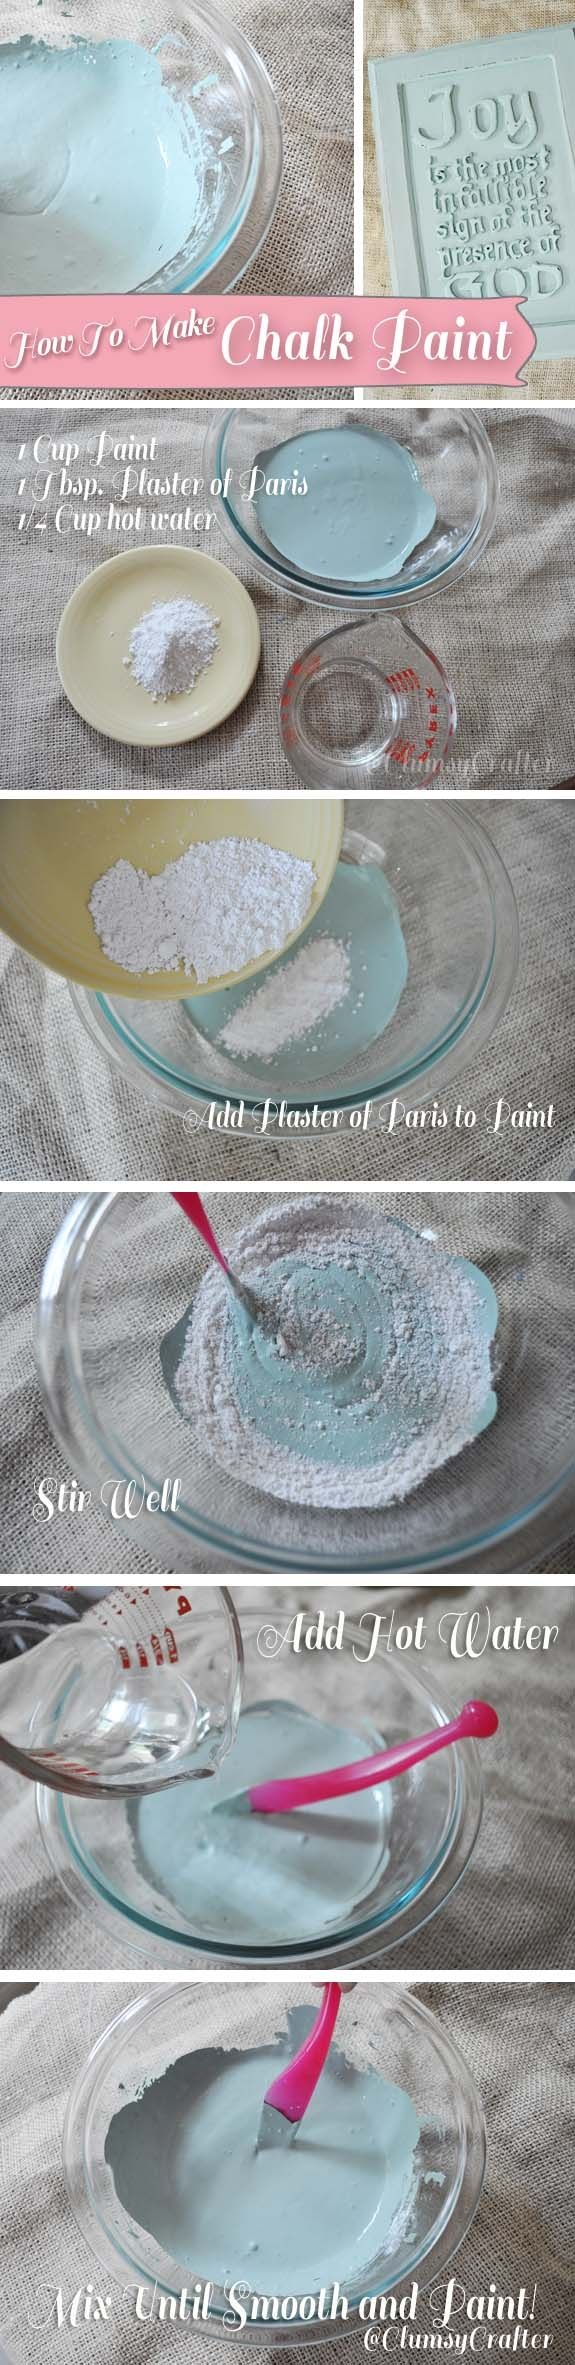 Recipes for chalk paint ~  Click any profile for recipes ~ http://www.pinterest.com/gerdabuurvrou/how-to-make-chalk-paint/